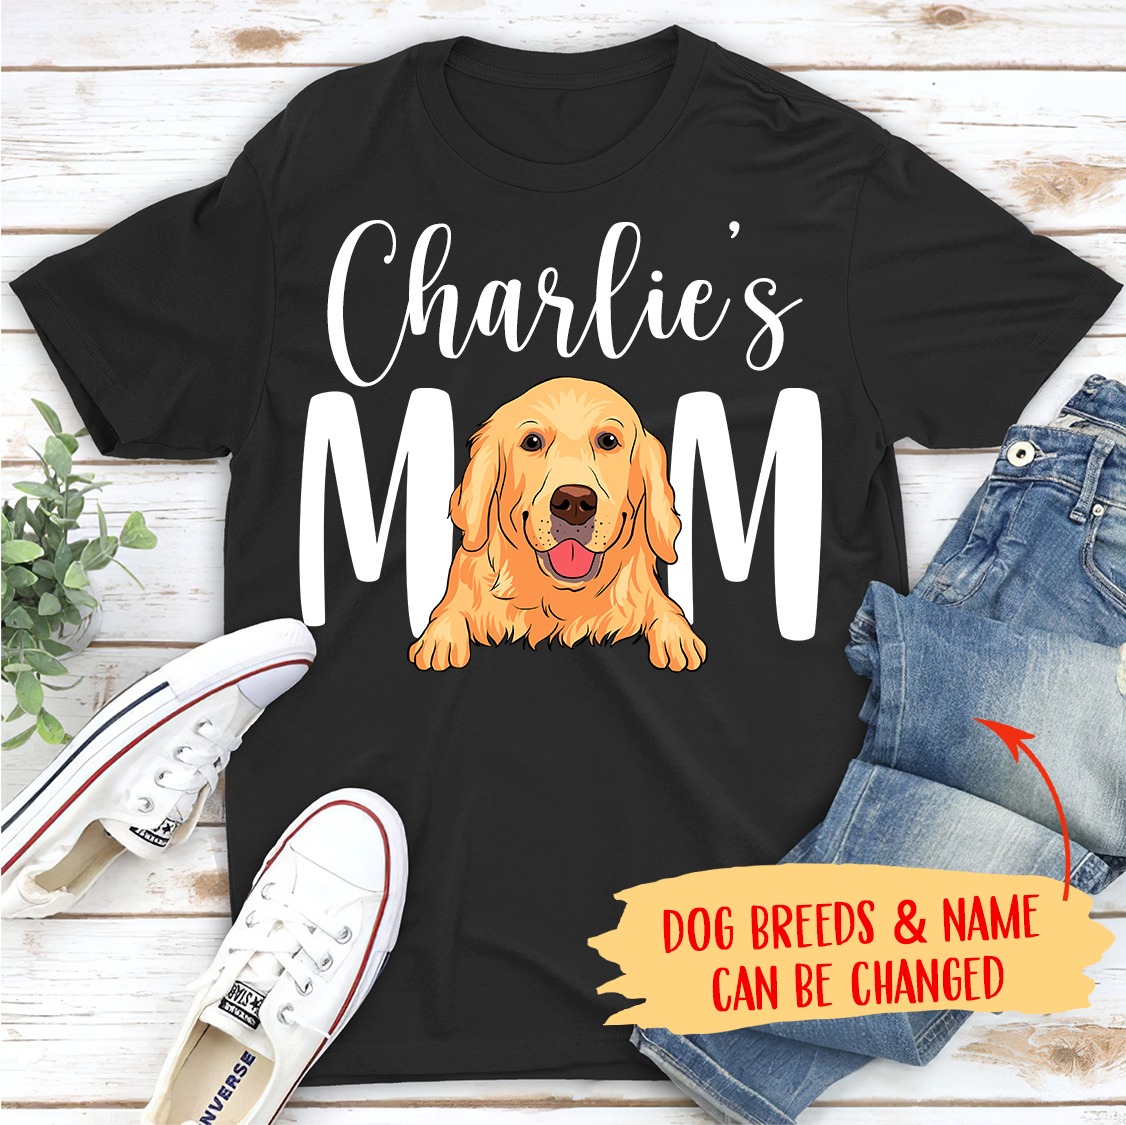 Dog Mom/Dad - Personalized Custom Unisex T-shirt - Gifts For Dog Lovers